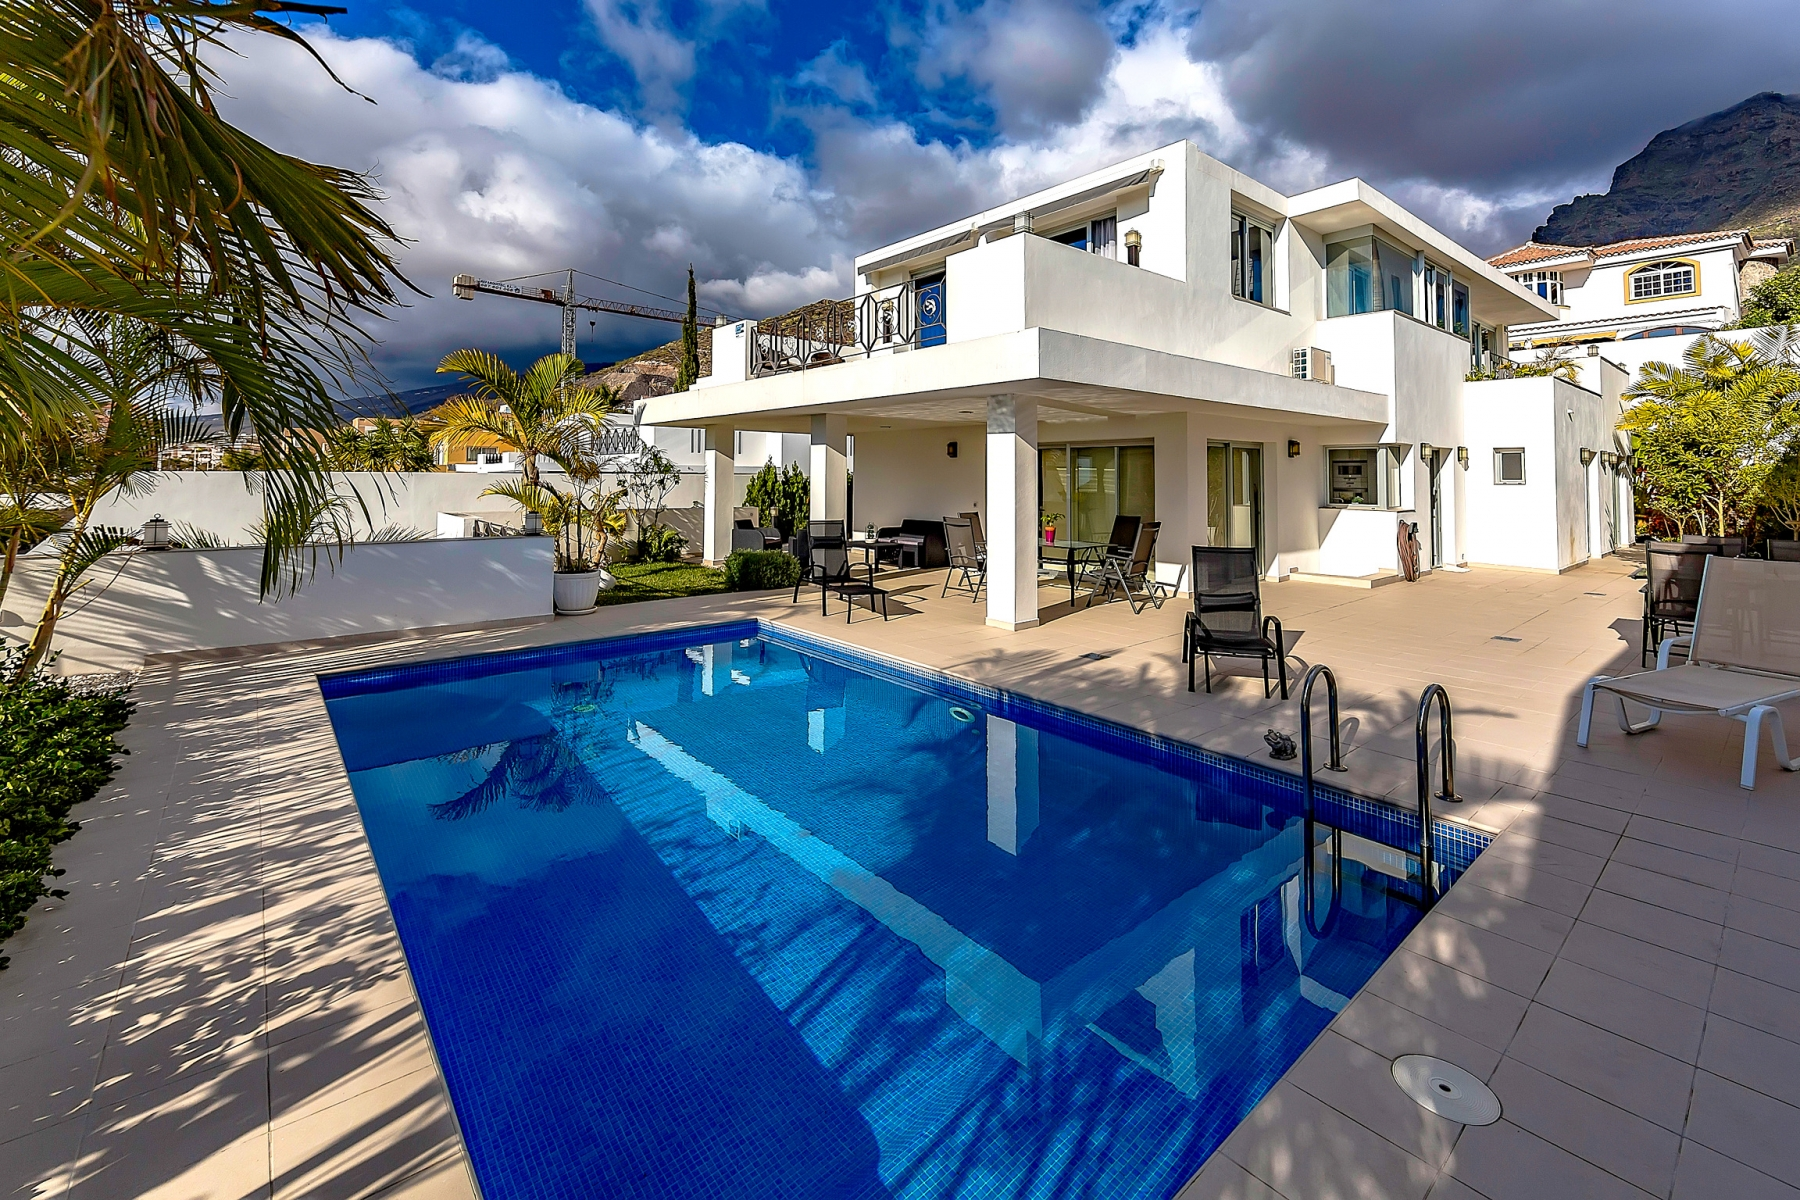 Properties for Sale in Tenerife, Canary Islands, Spain   SylkWayStar Real Estate. Luxury villa in the fashionable area of the south of the island of Tenerife – Madroñal.. Image-22827